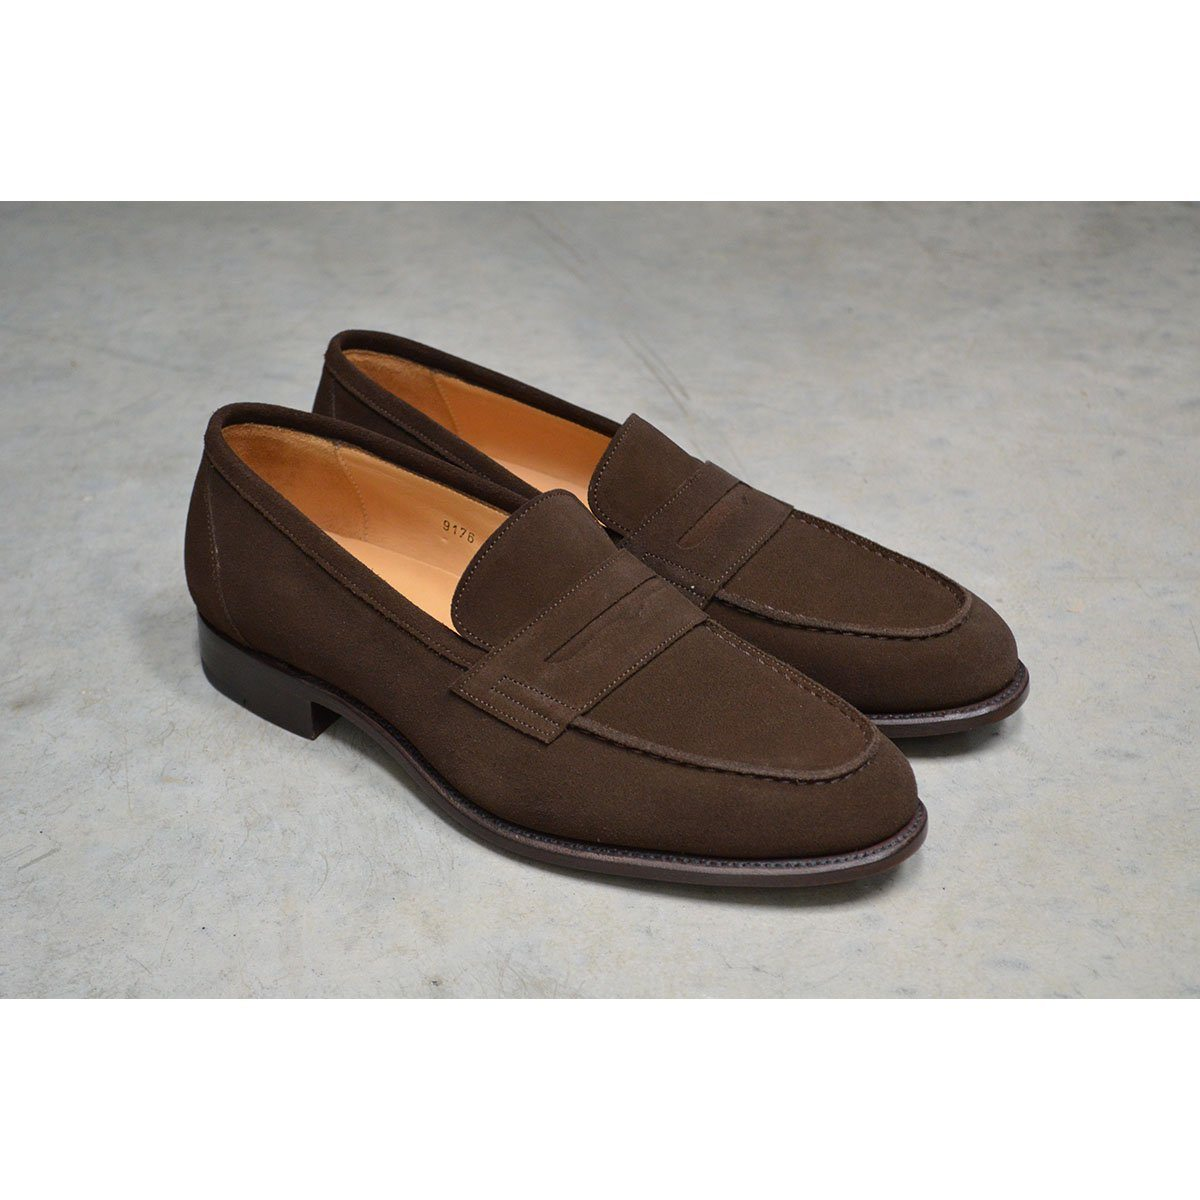 10d2b3ad7e2b Carlos Santos Penny Loafer in Dark Brown Suede - A Fine Pair of ...